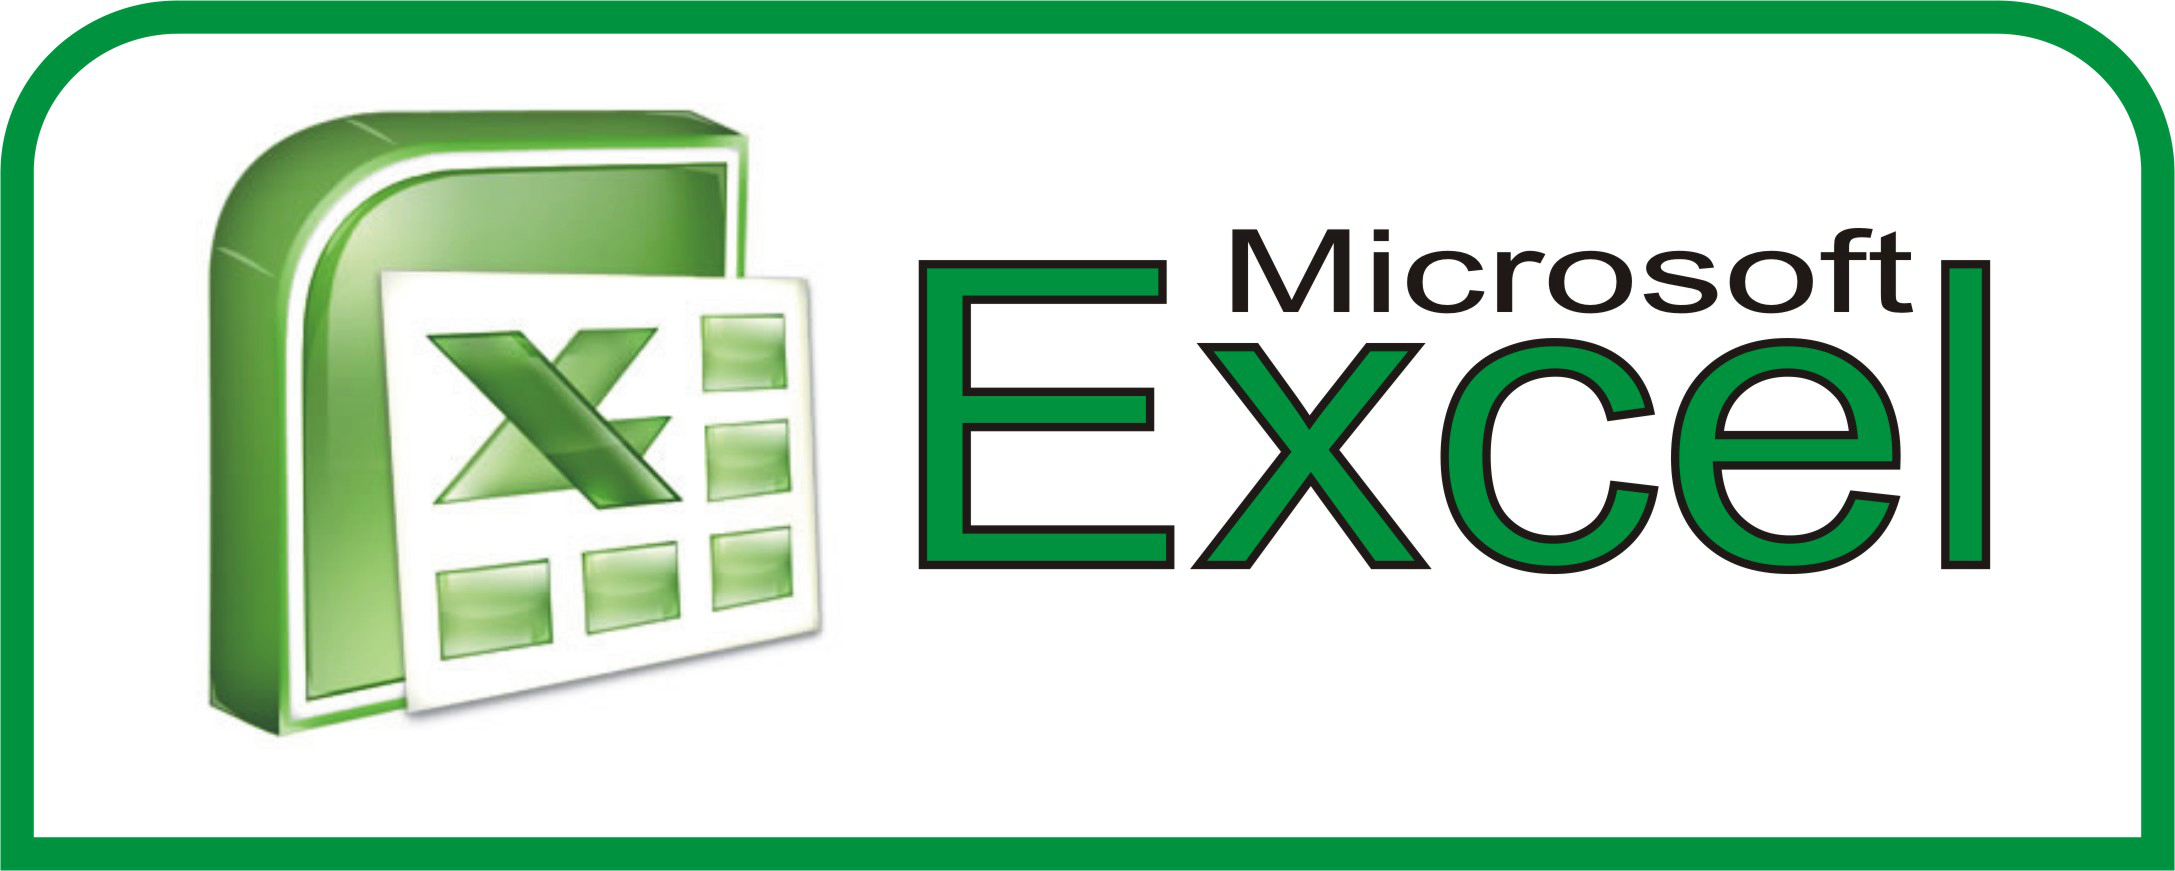 Ediblewildsus  Scenic  Excel Shortcuts You Probably Didnt Know About  Techdissected With Entrancing Excel Custom Formats Besides Nexus Excel Furthermore Excel  If And With Awesome Essbase Excel Addin Download Also How To Enable Add Ins In Excel In Addition Excel Budgeting Template And Networkdays Function In Excel As Well As Reinstall Excel Additionally Excel Download Trial From Techdissectedcom With Ediblewildsus  Entrancing  Excel Shortcuts You Probably Didnt Know About  Techdissected With Awesome Excel Custom Formats Besides Nexus Excel Furthermore Excel  If And And Scenic Essbase Excel Addin Download Also How To Enable Add Ins In Excel In Addition Excel Budgeting Template From Techdissectedcom